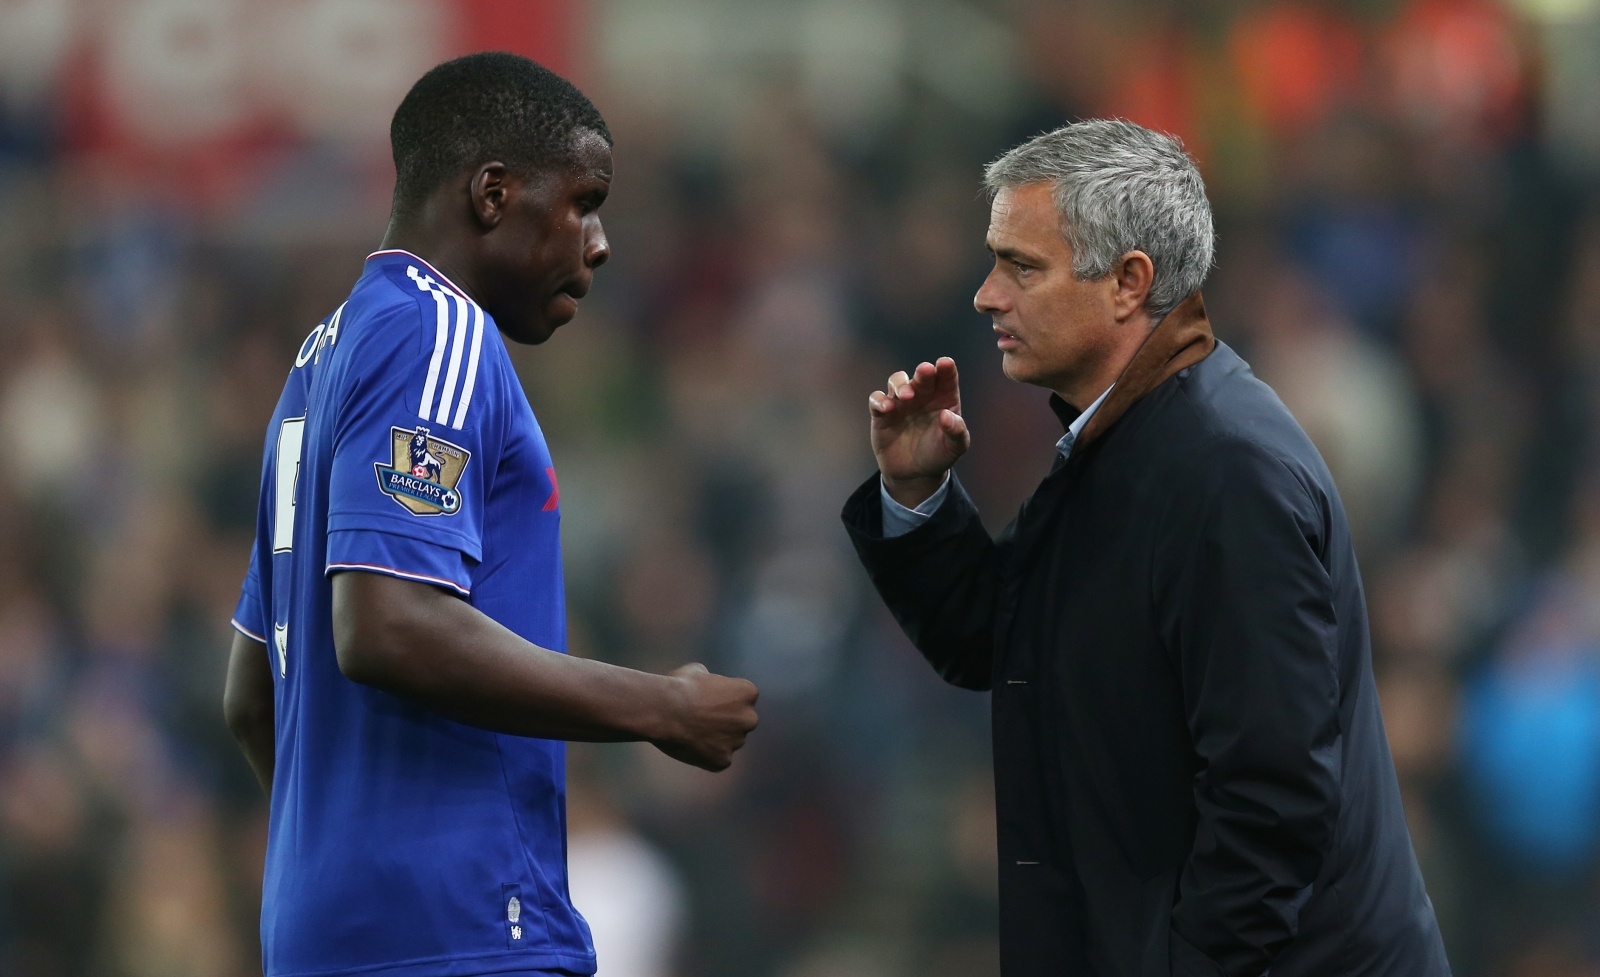 Kurt Zouma and Jose Mourinho